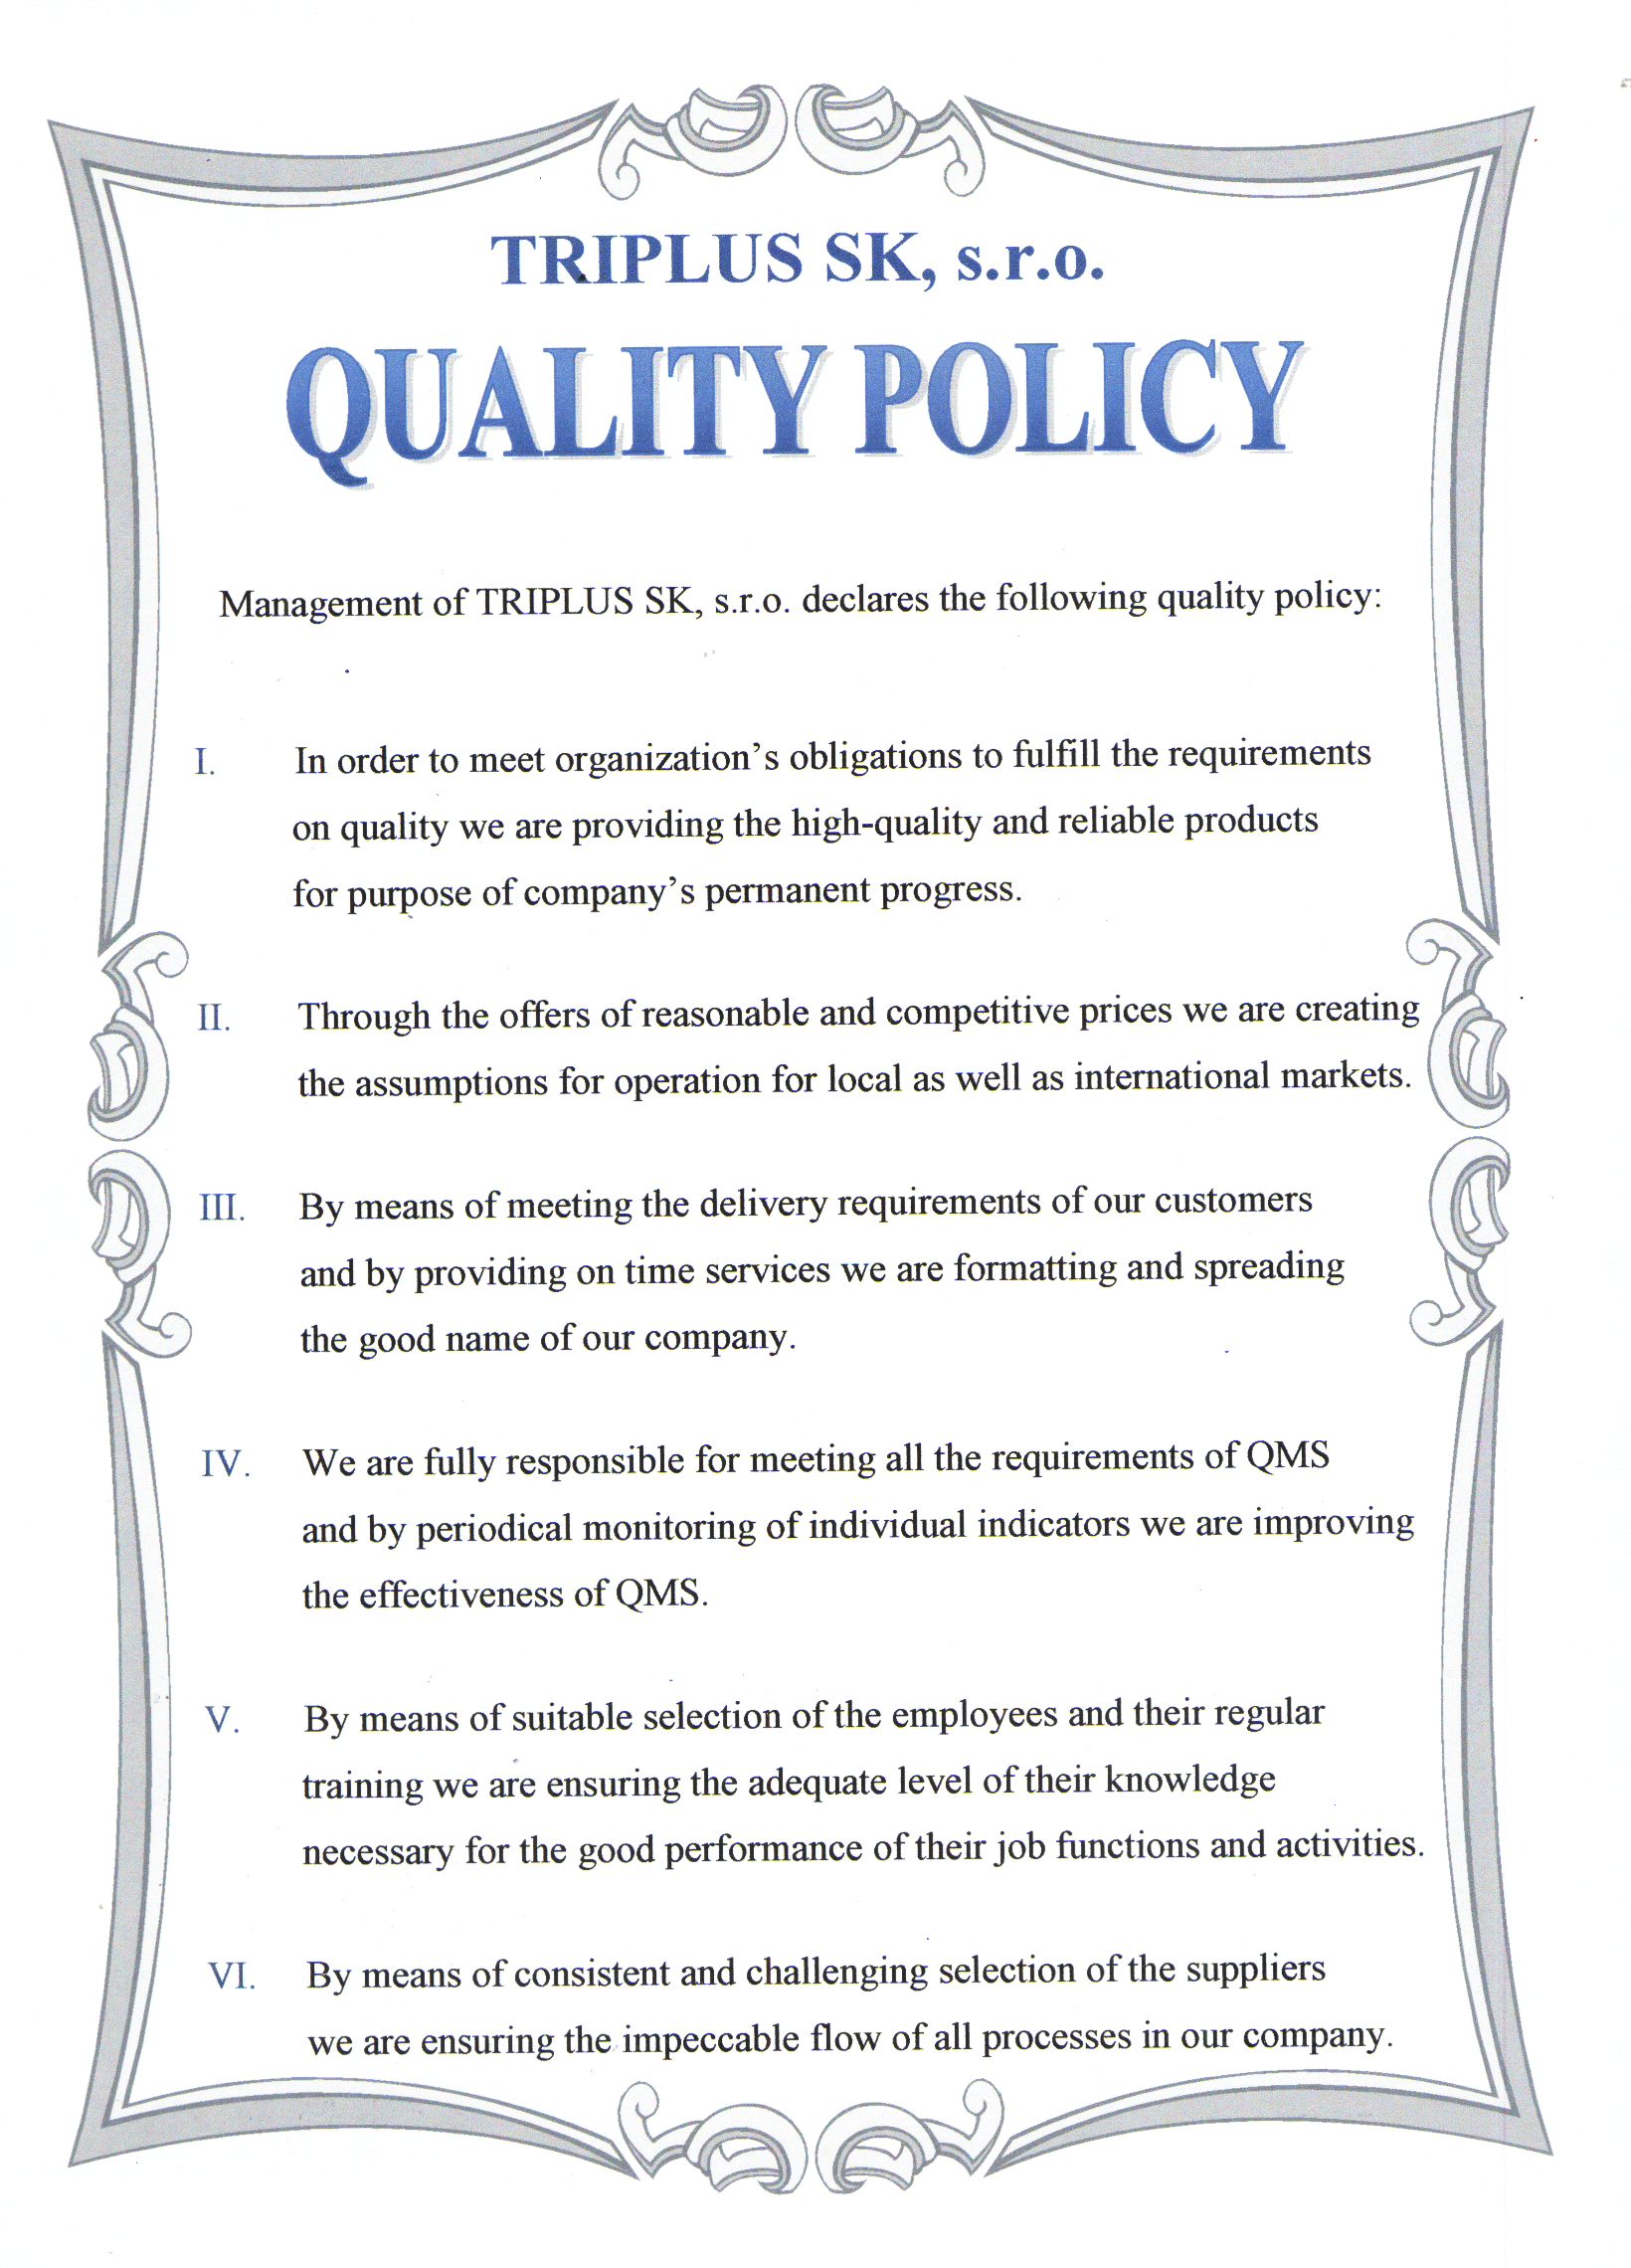 Quality-policy-e1396273373796.png